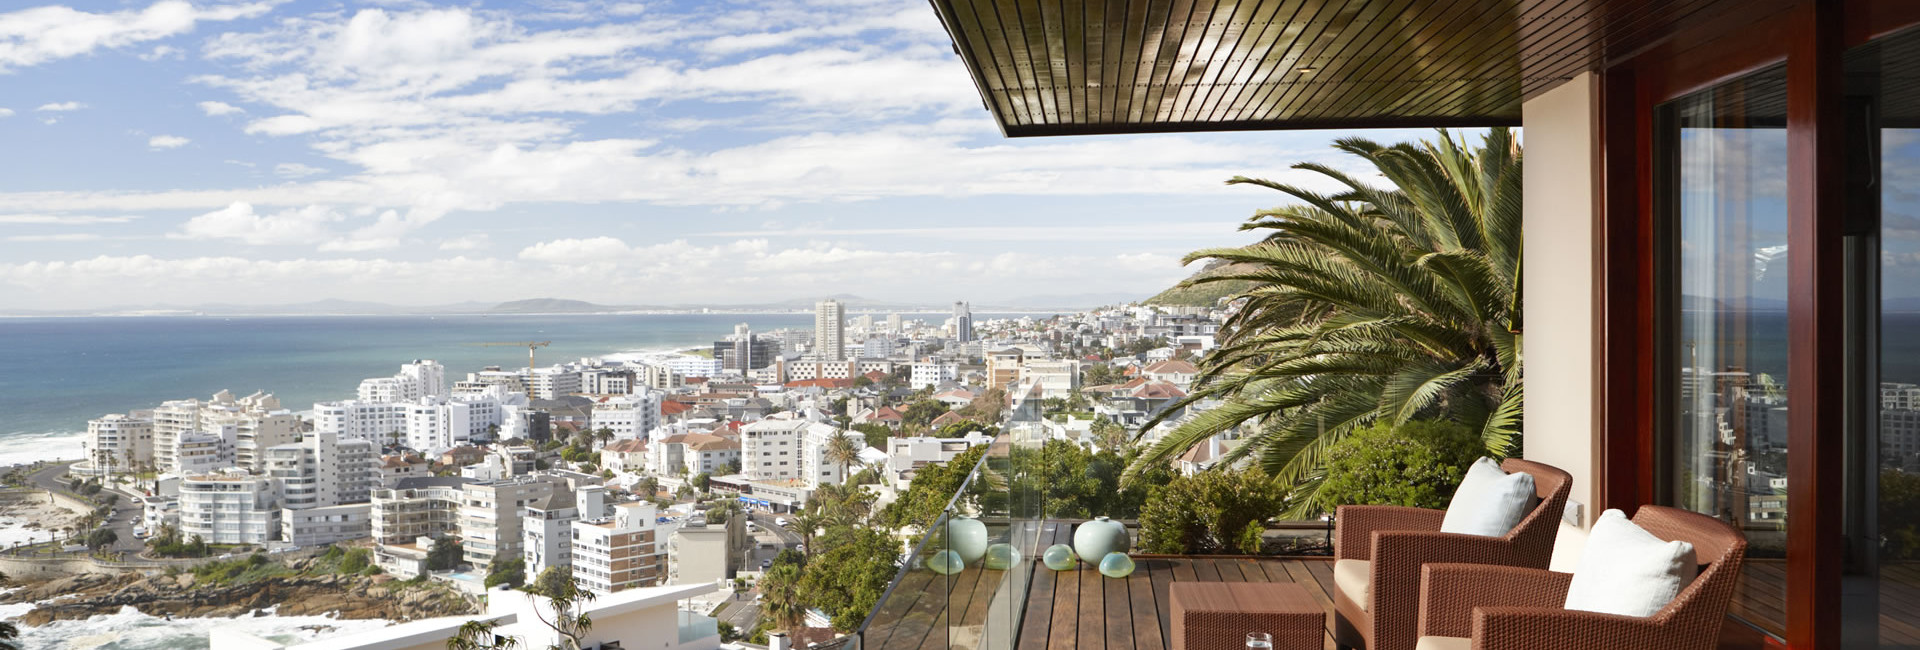 Ellerman House Iconic Cape Town Hotel